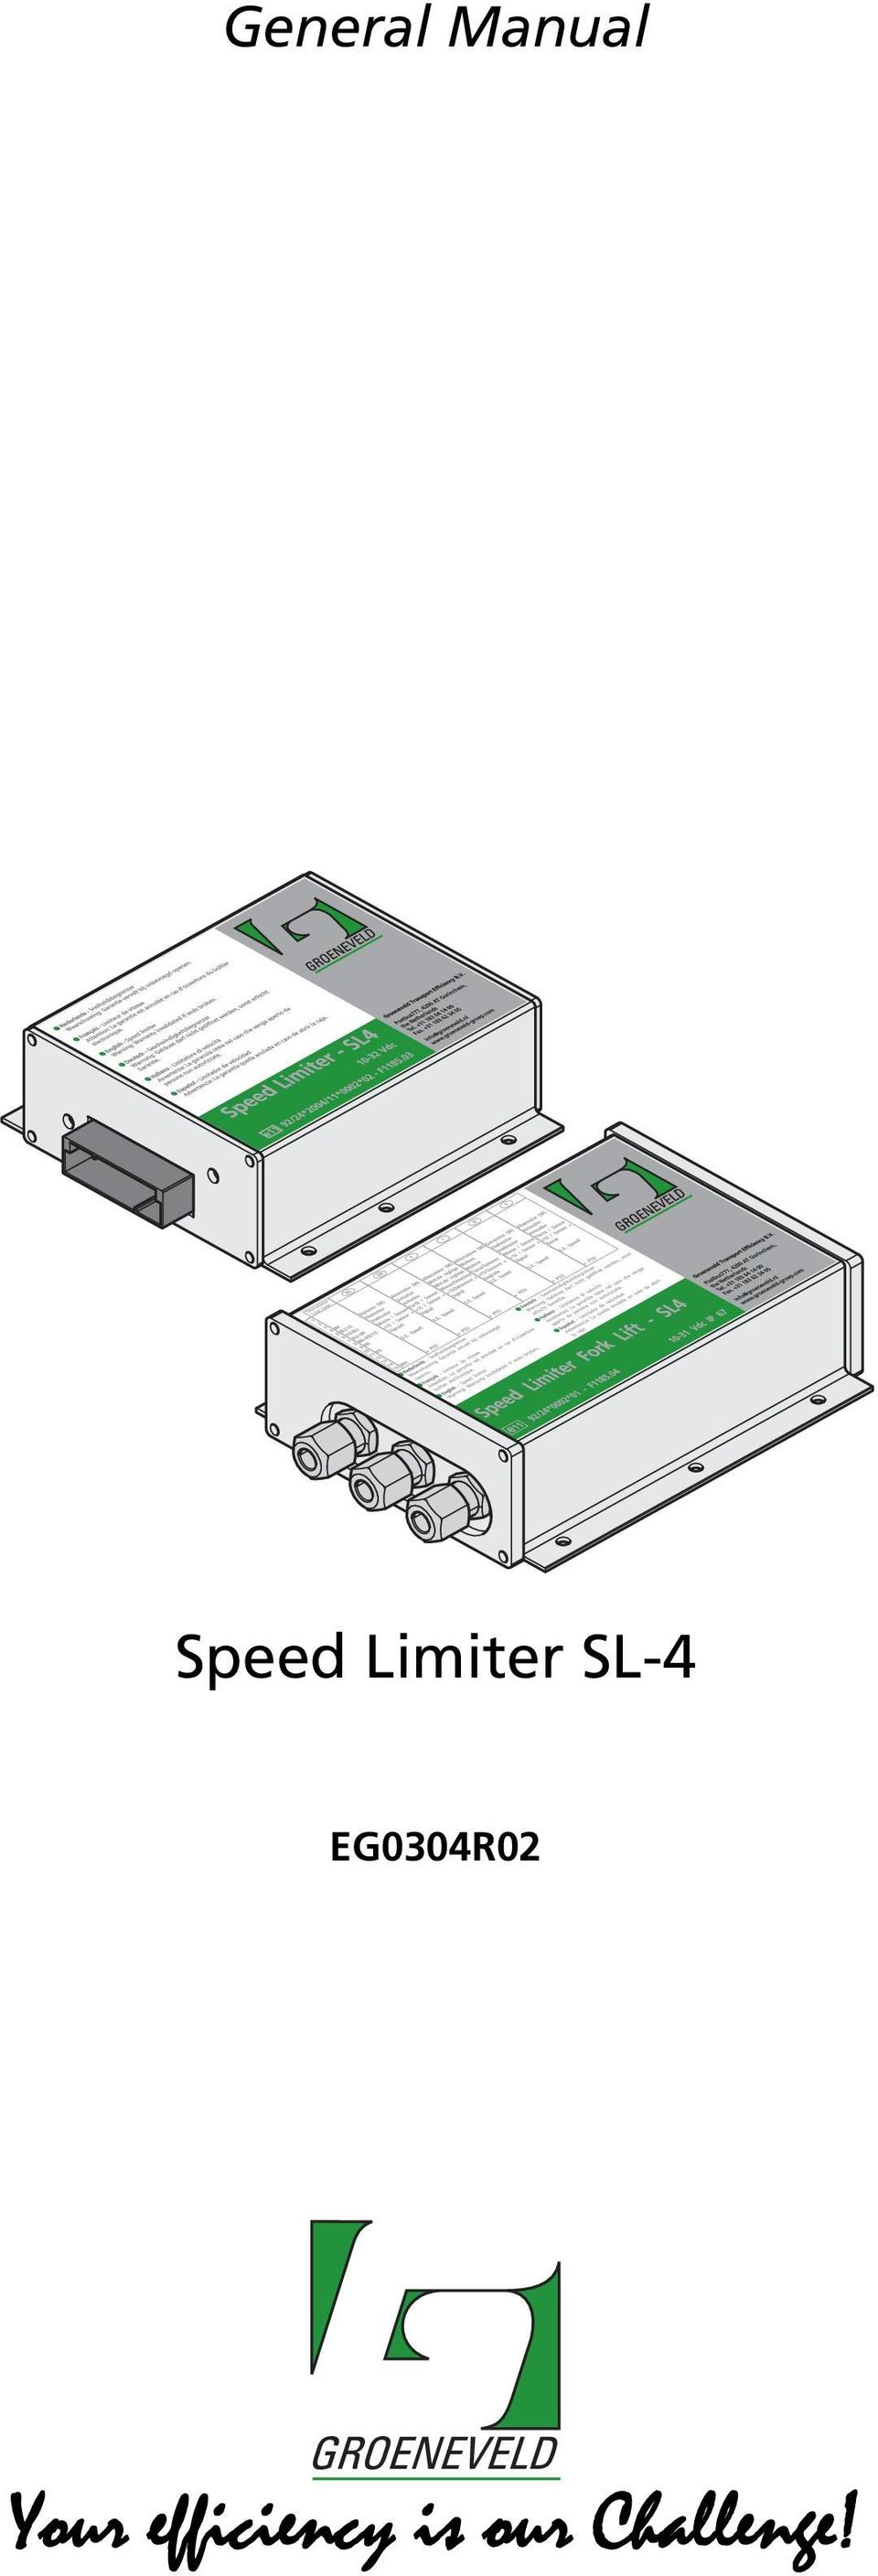 General Manual  Speed Limiter SL-4 EG0304R02  Your efficiency is our